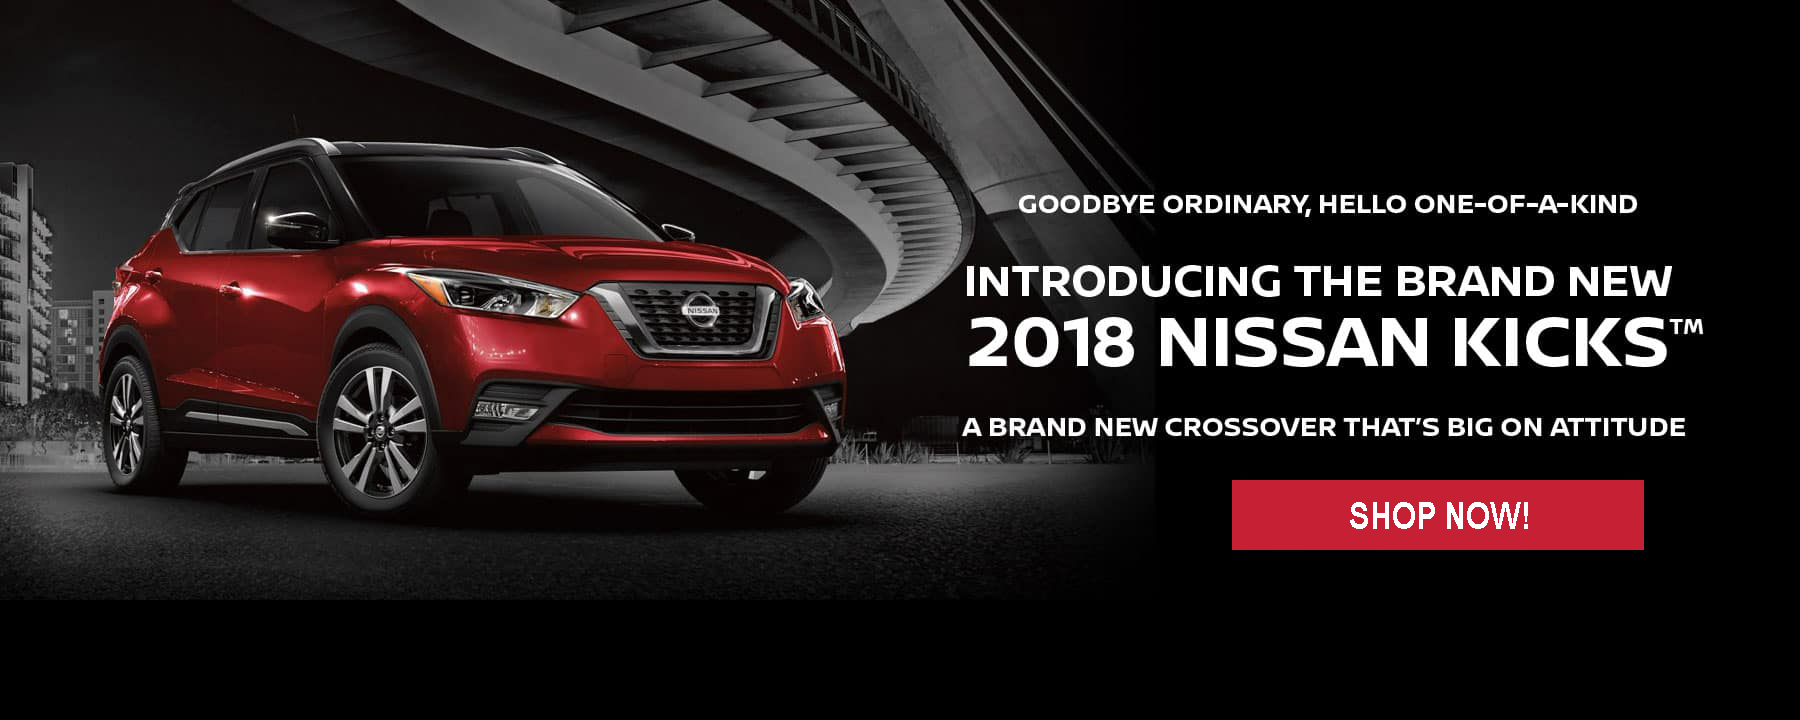 Introducing the 2018 Nissan Kicks available NOW at Star Nissan!